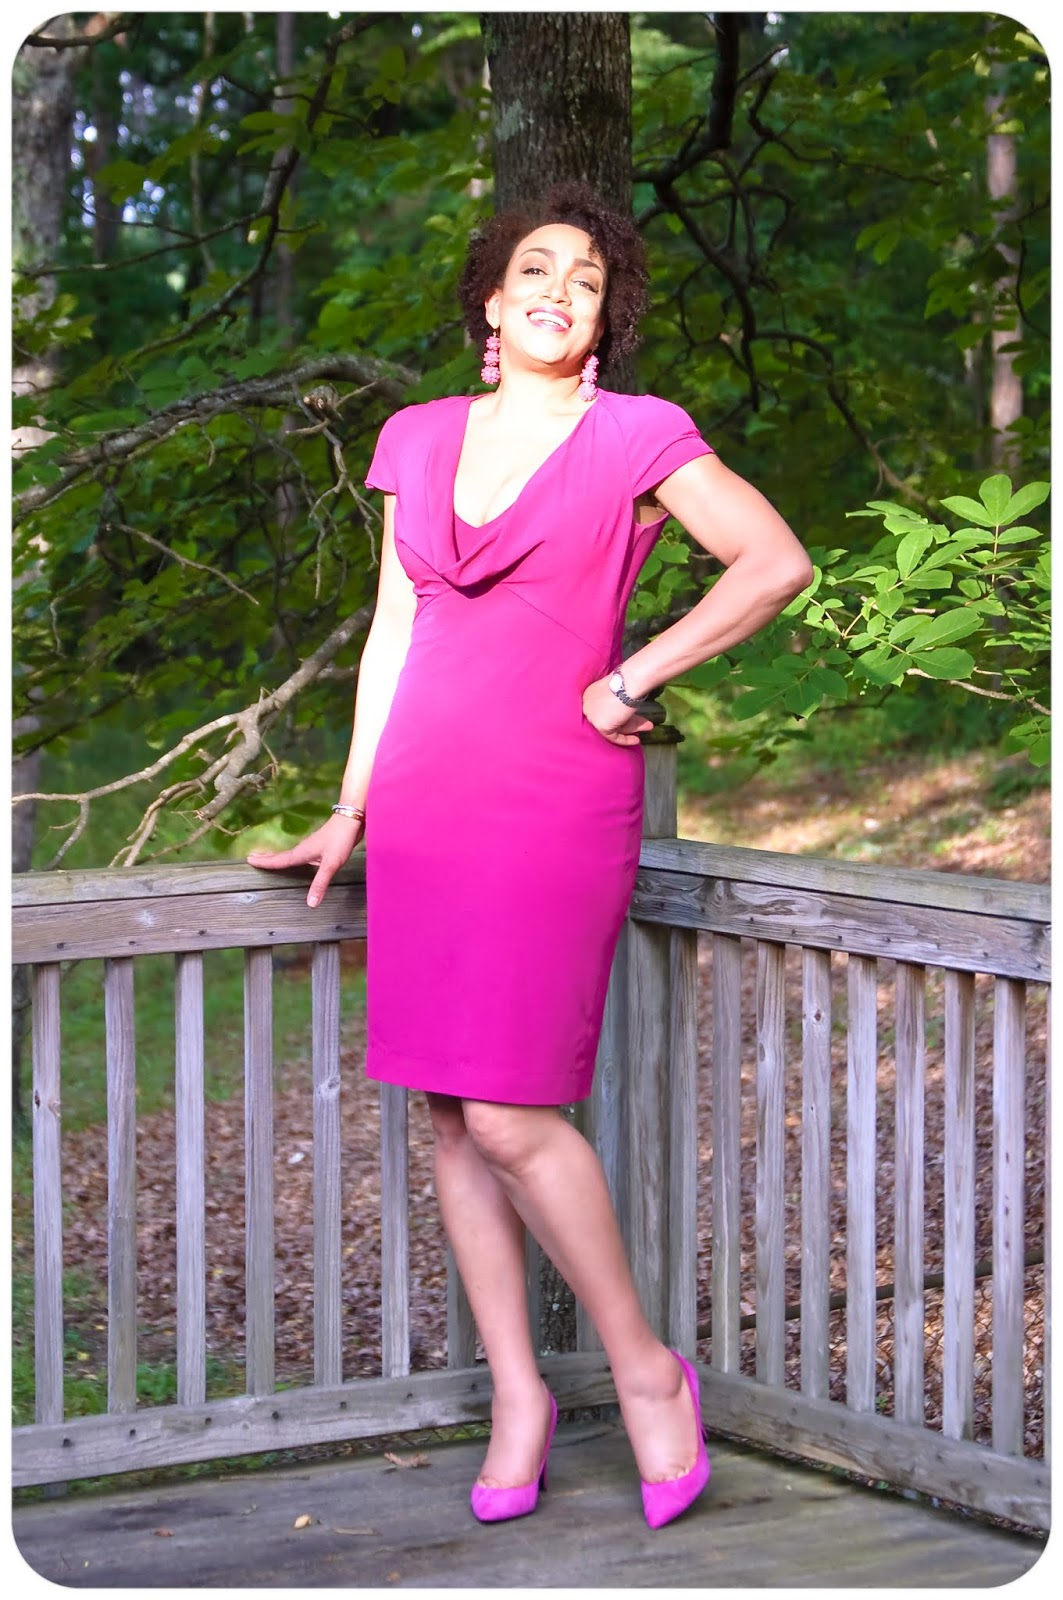 Butterick 5710 - That Fabulous Alexander McQueen Dress! - Erica Bunker DIY Style!